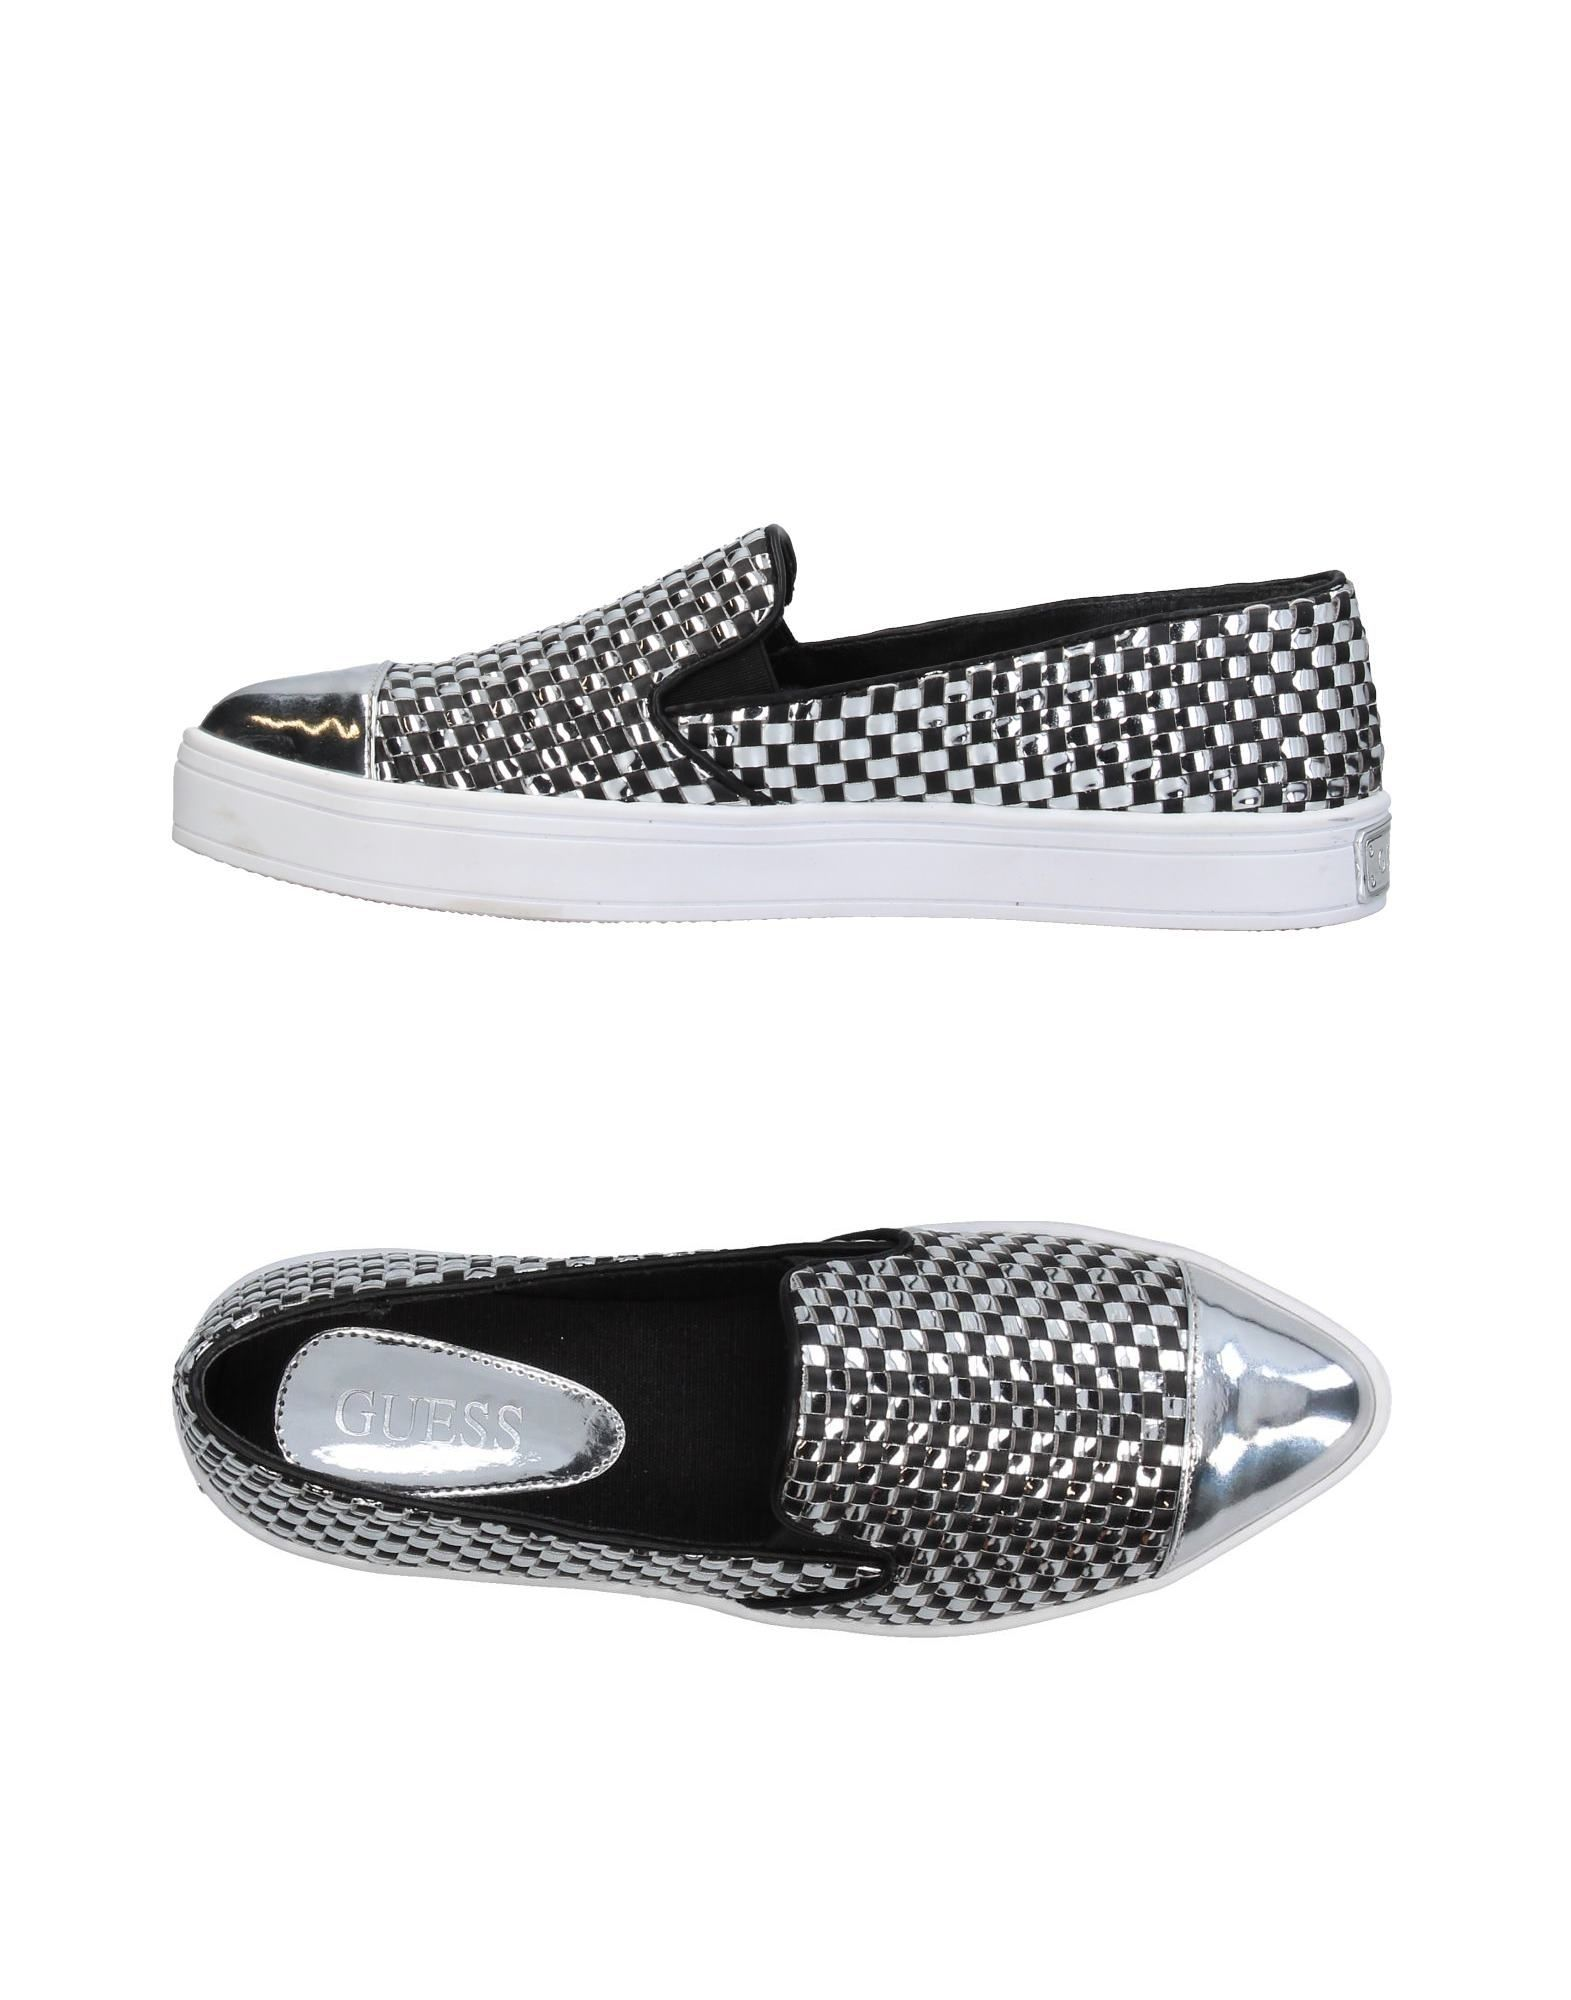 Moda Sneakers Guess Donna - - Donna 11396583AQ 0a5c4a